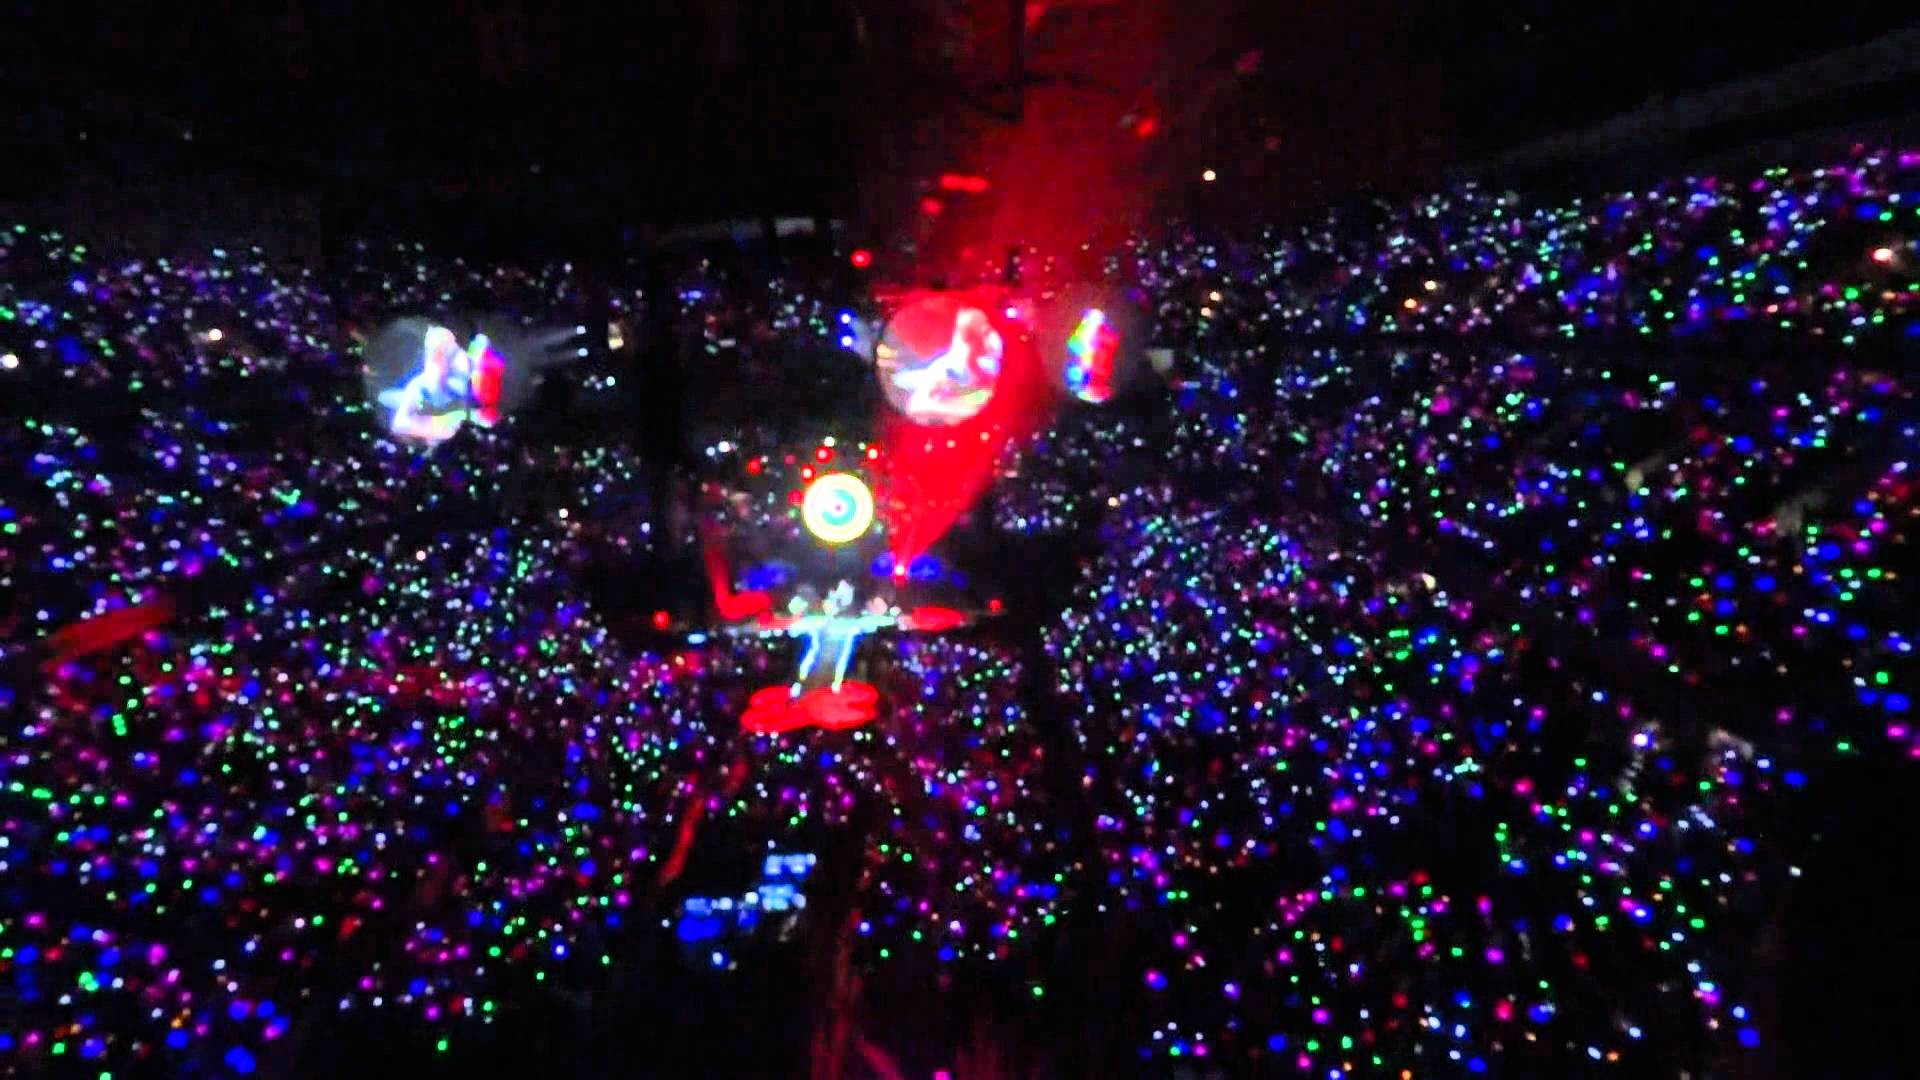 Coldplay Wallpaper HD (79+ images)